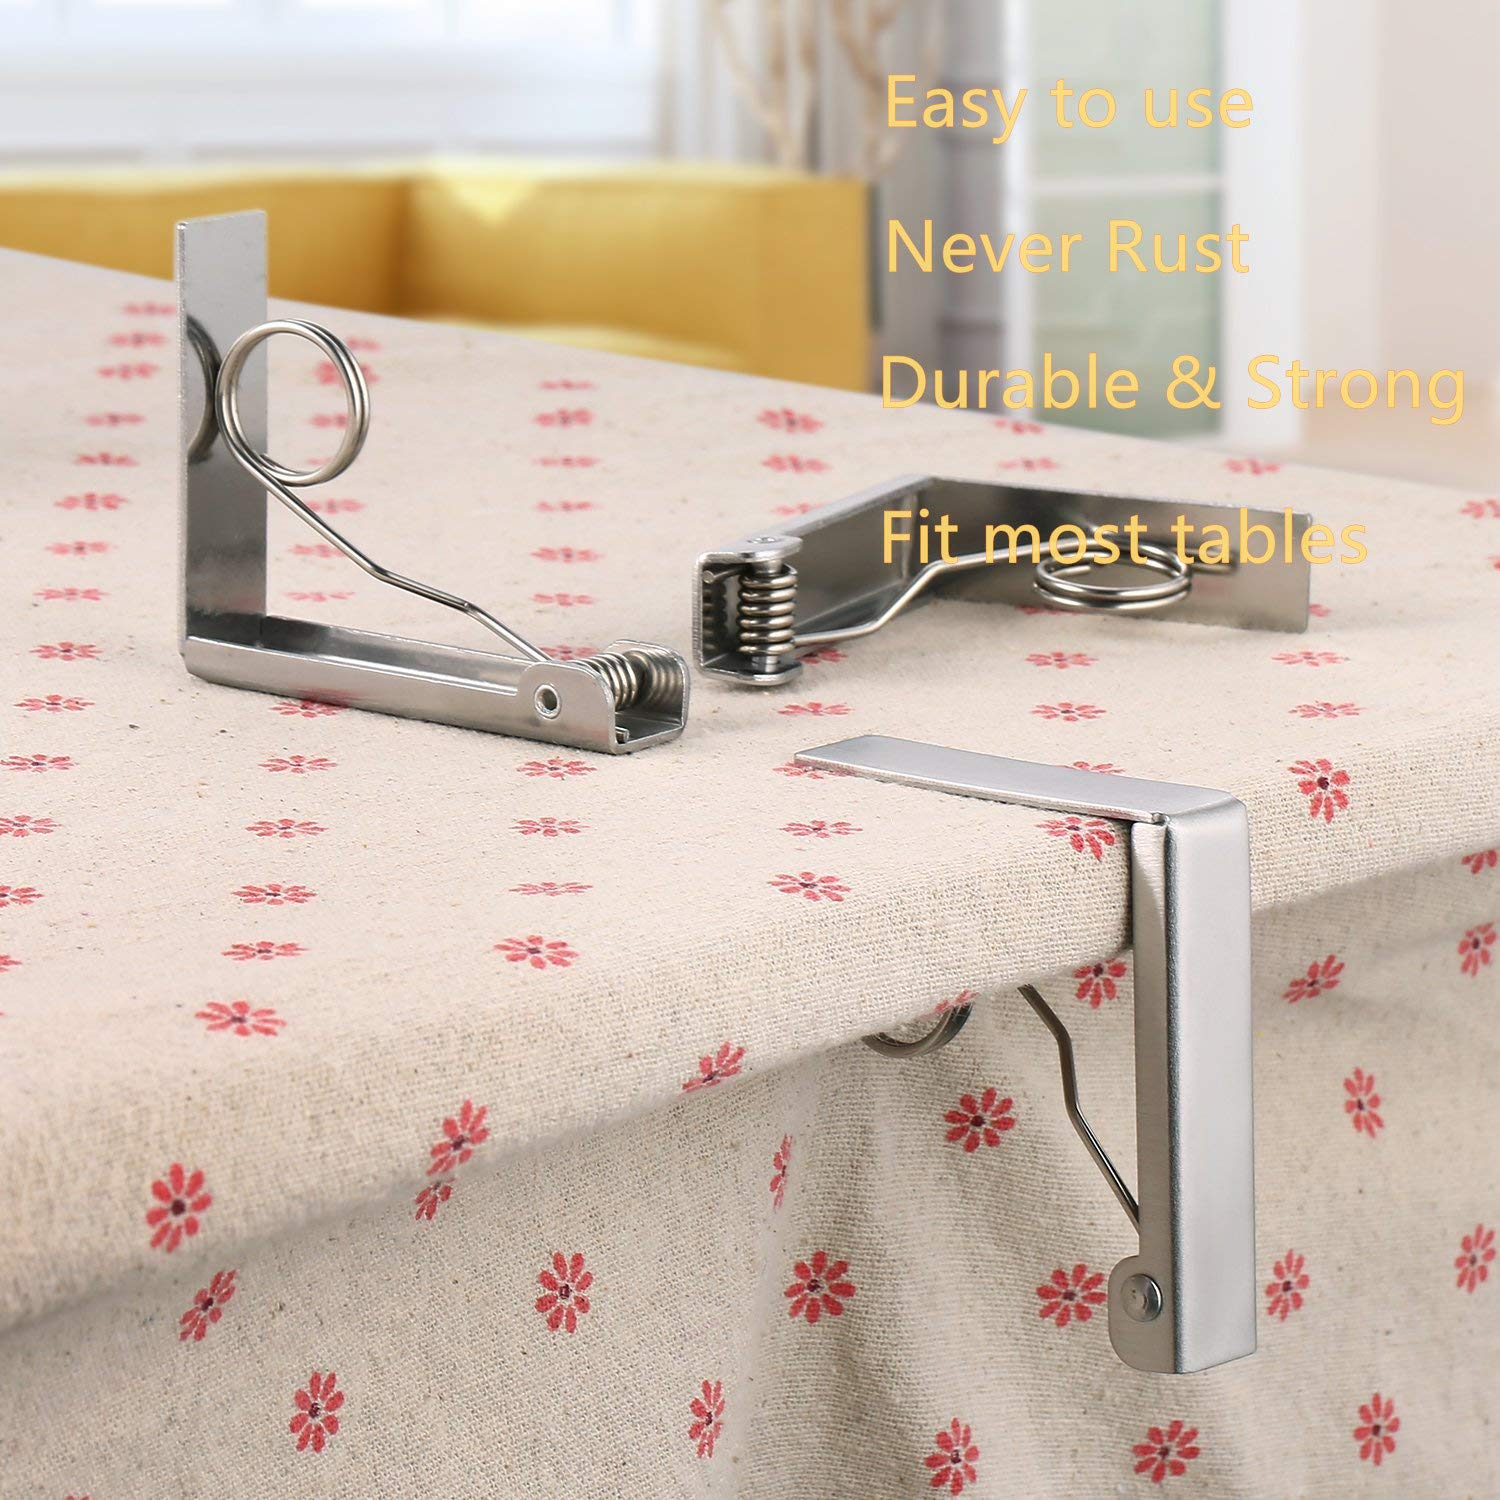 Qrooper Tablecloth Clips Stainless Steel Table Cover Clamps Table Cloth Holders for Outdoor and Indoor Uses by, 8 Count (Suitable for Table Thickness of 2 1/2\'\' or less)